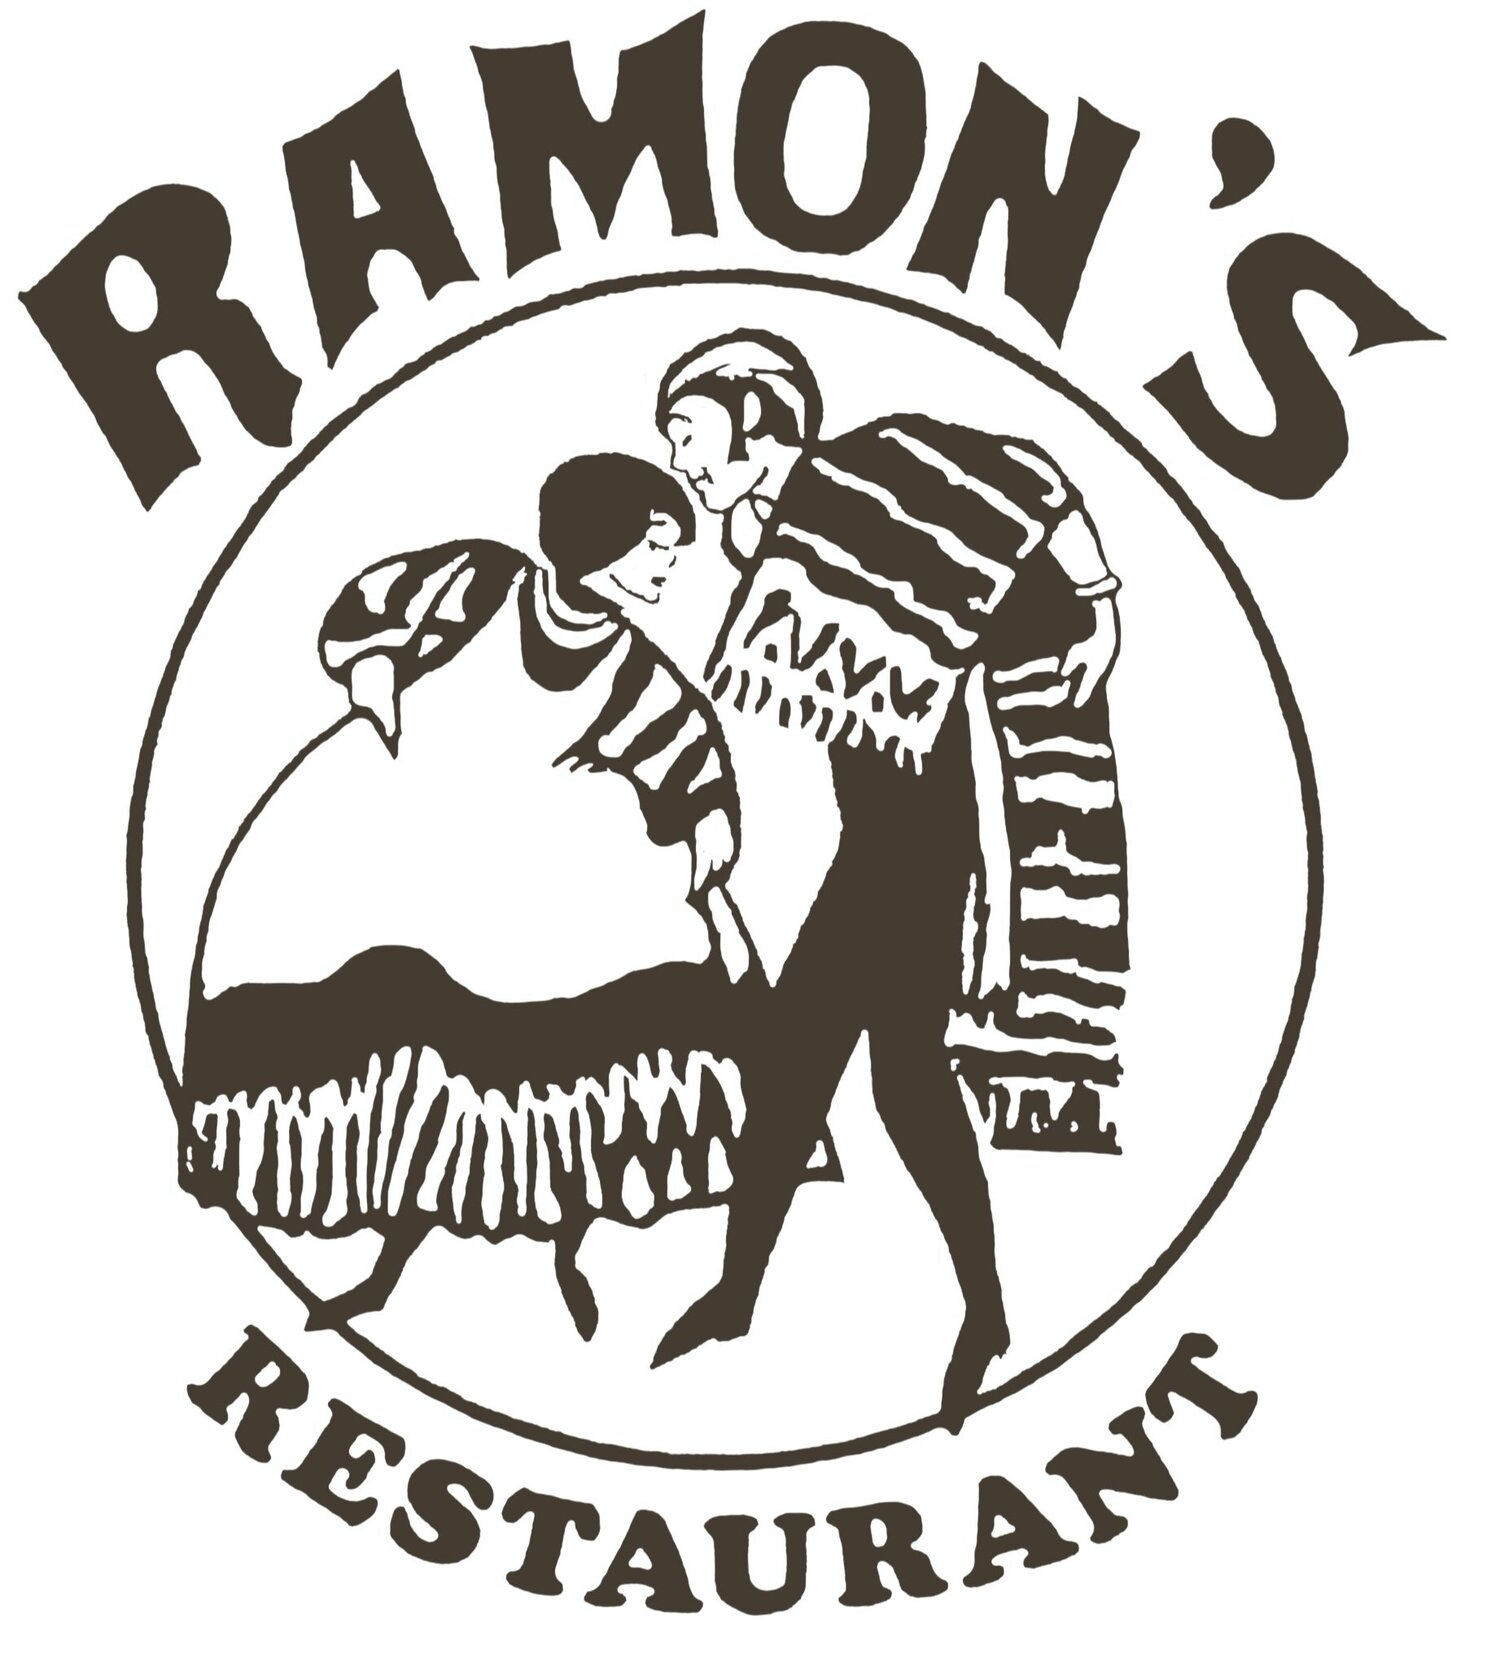 Ramon's El Dorado | Authentic Mexican Cuisine